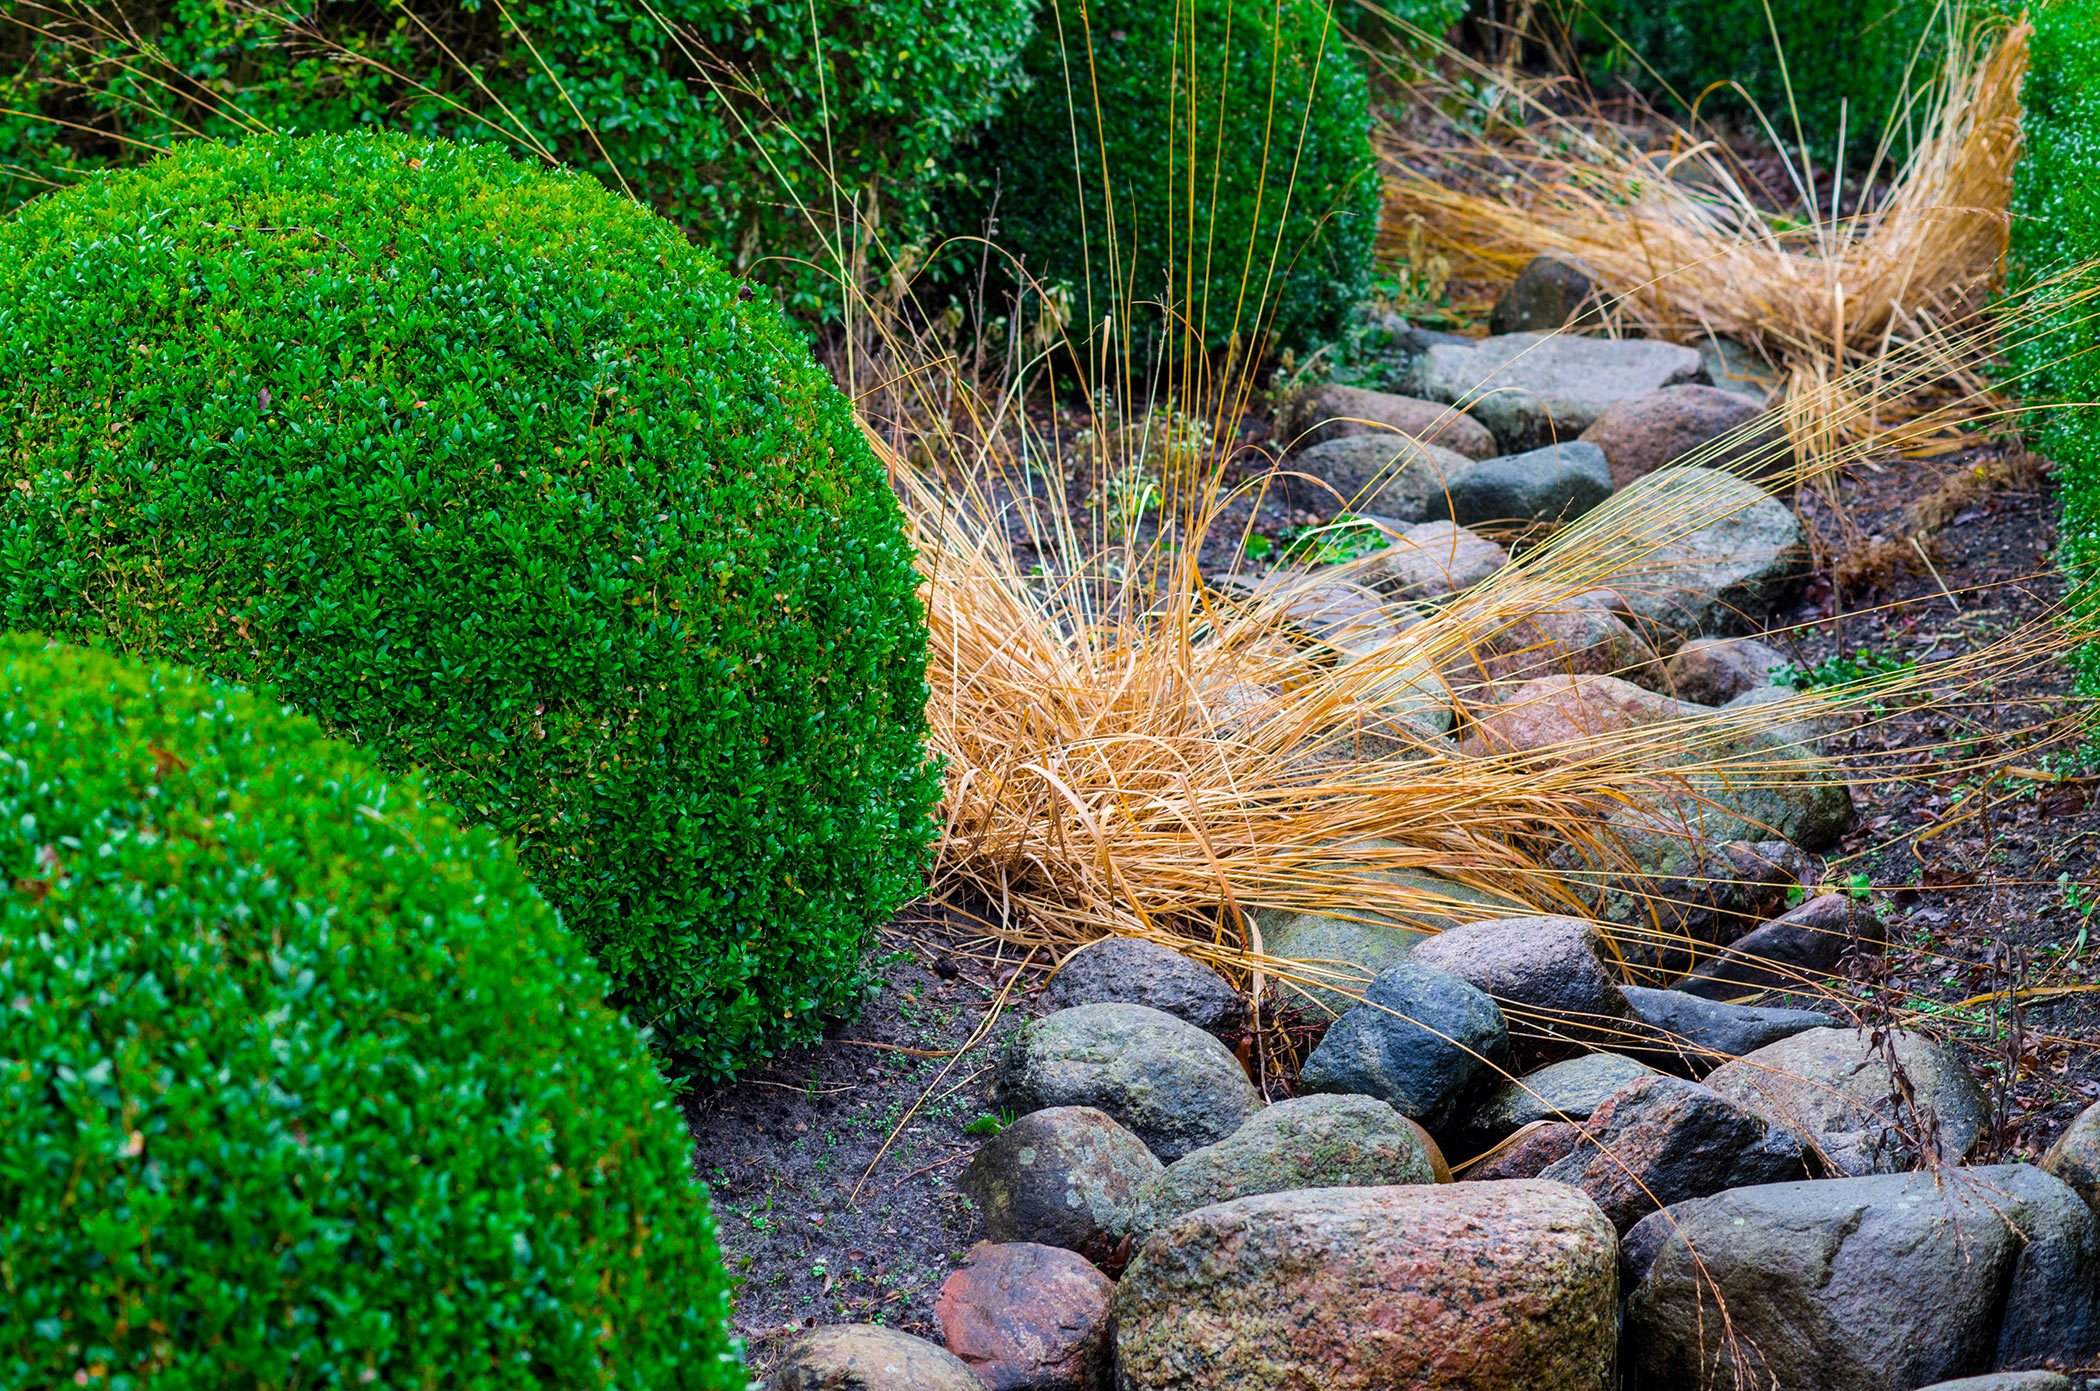 shrubs and grasses growing in stones